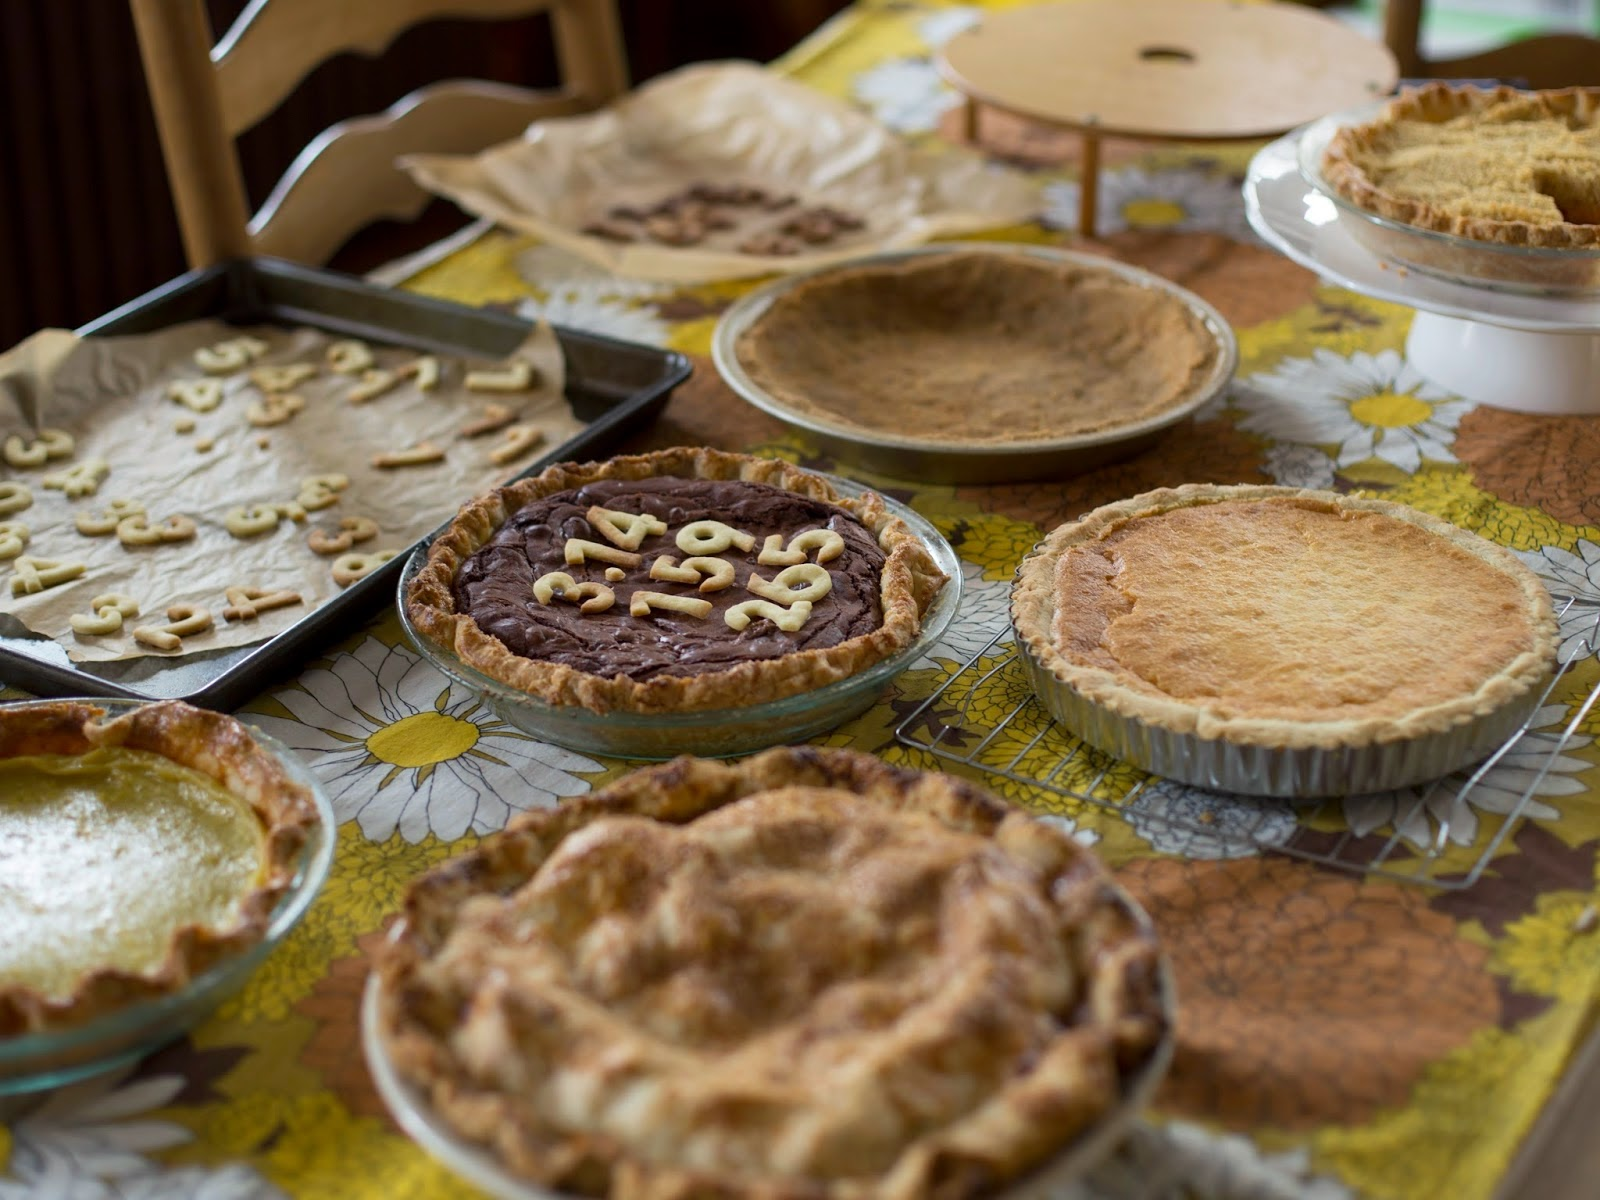 Pi(e) Day Pies on a Table